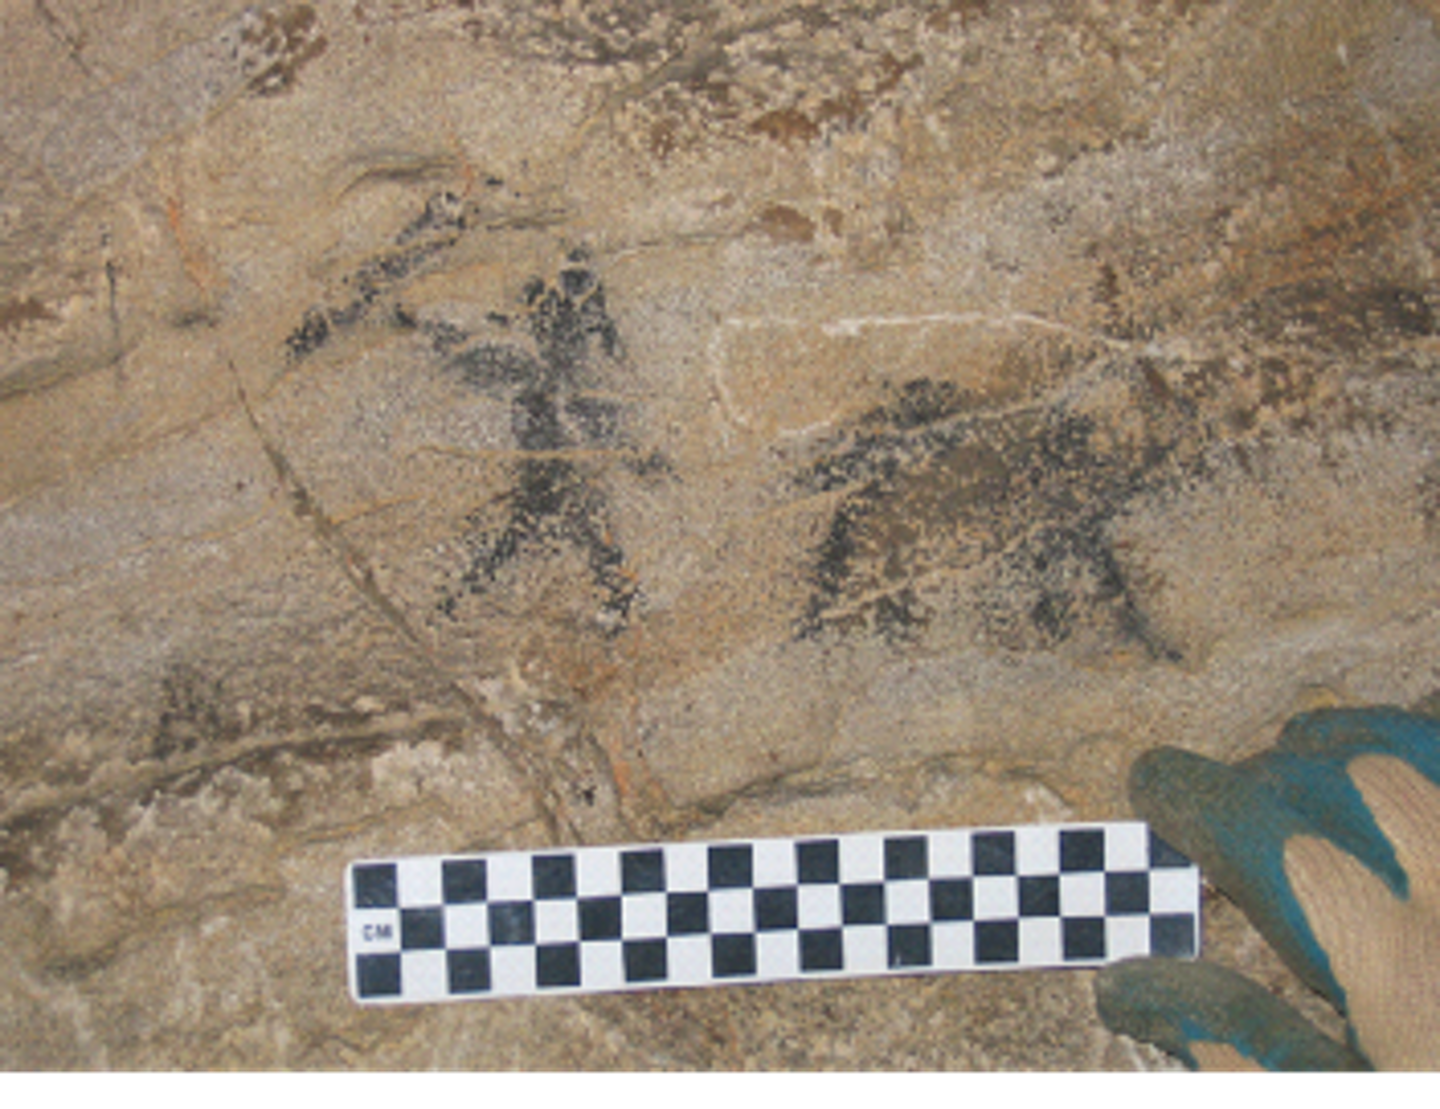 dark silhouette figures of a human and a quadruped on stone